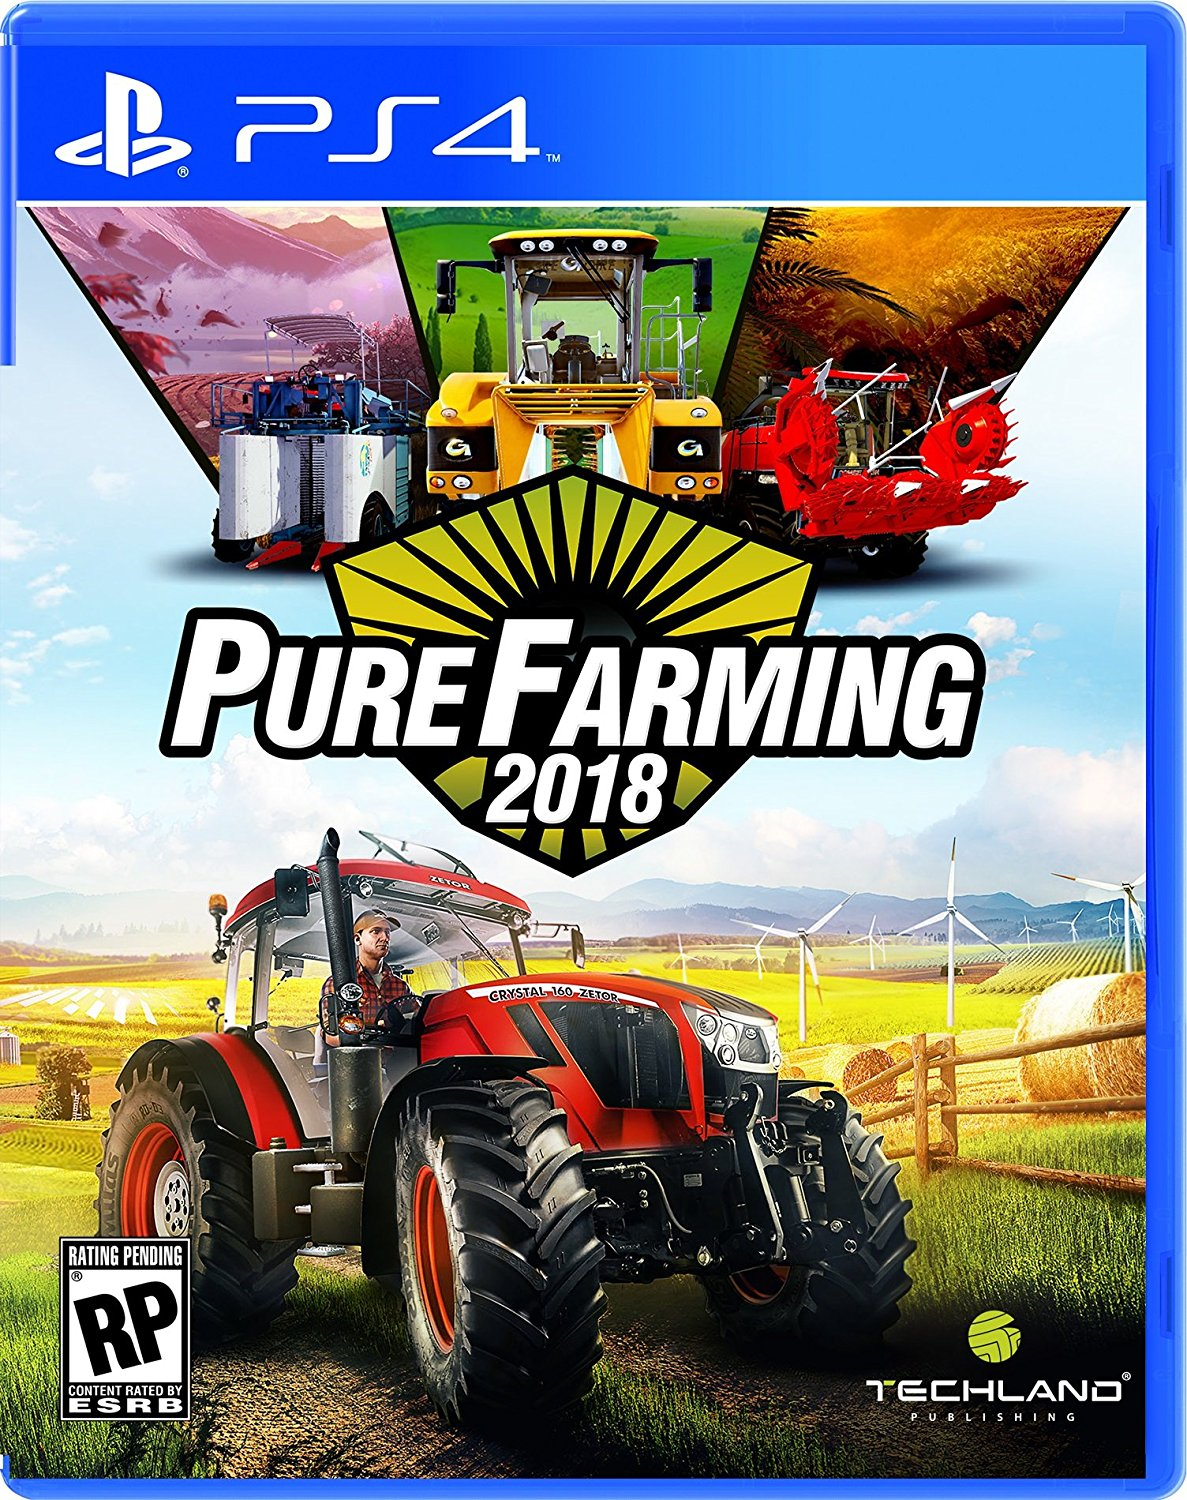 PS4 Pure Farming 2018 (PlayStation 4)